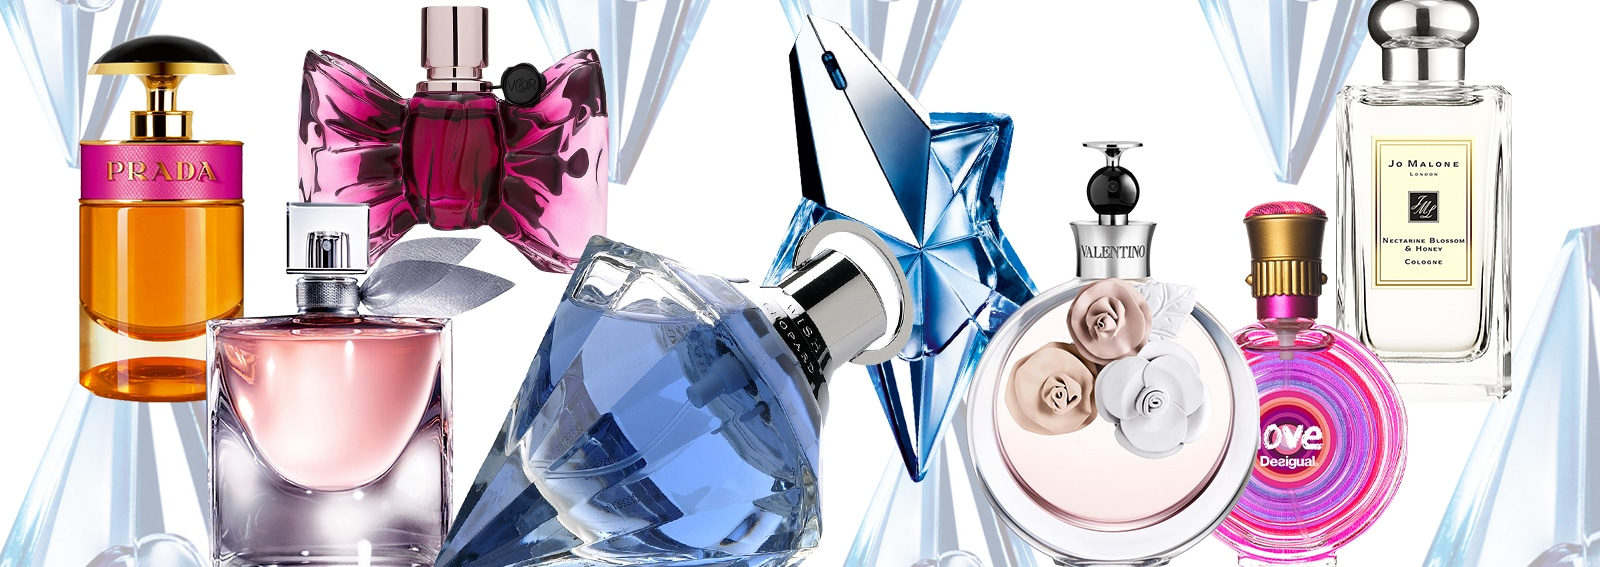 cover-profumi-donna-dolci-le-fragranze-desktop